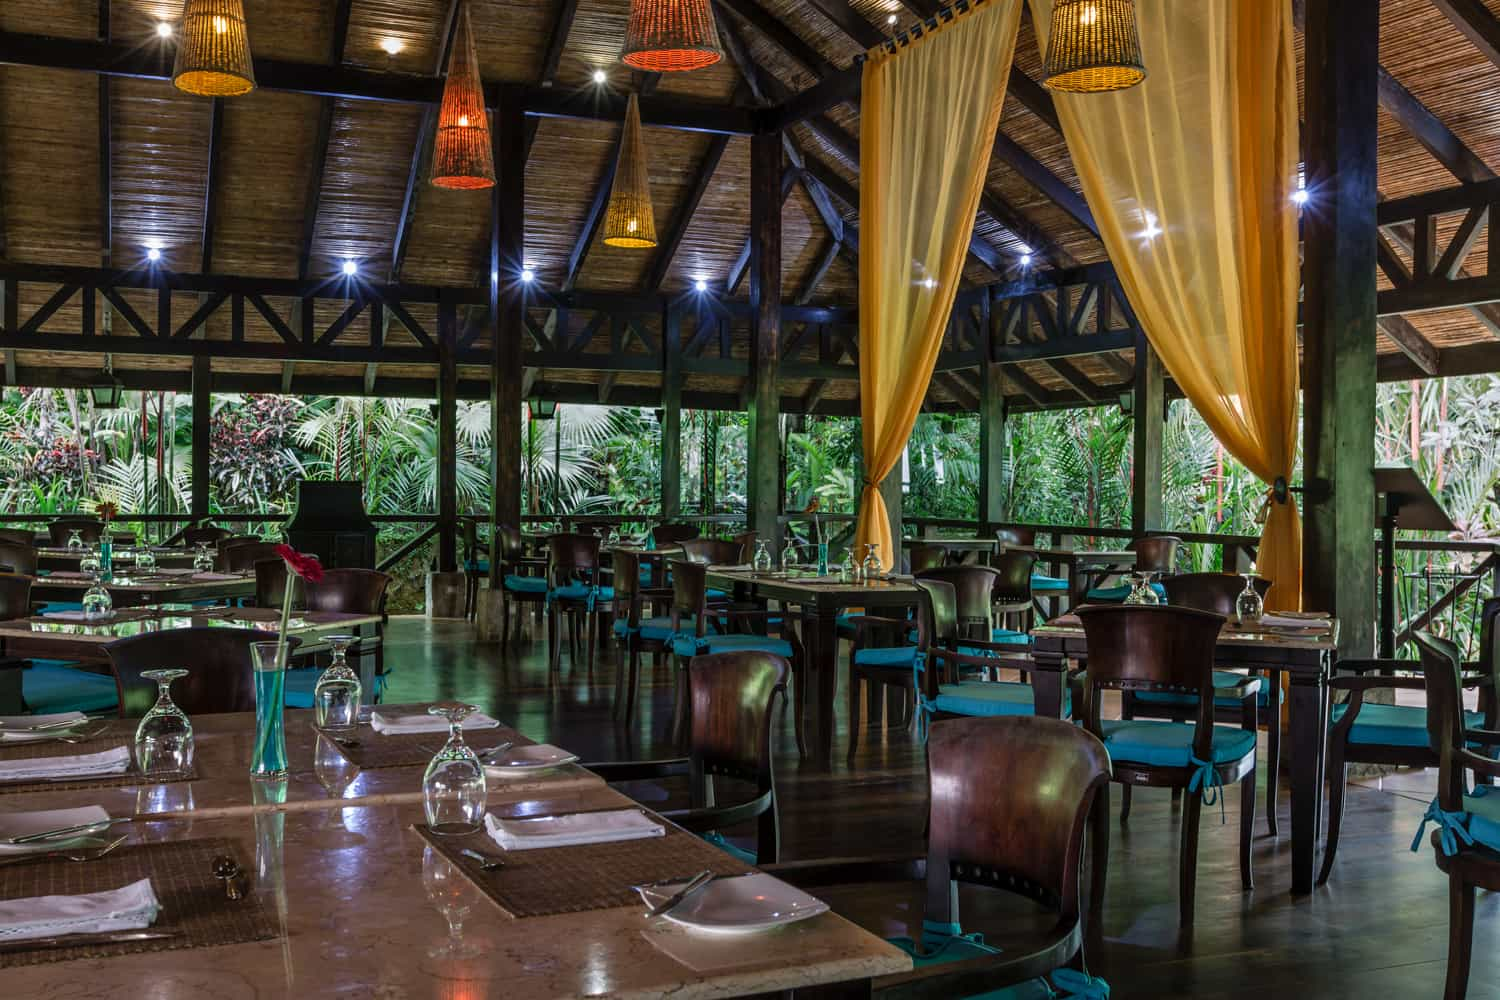 Amazing location at Rio Celeste Hideaway Hotel for wedding event.